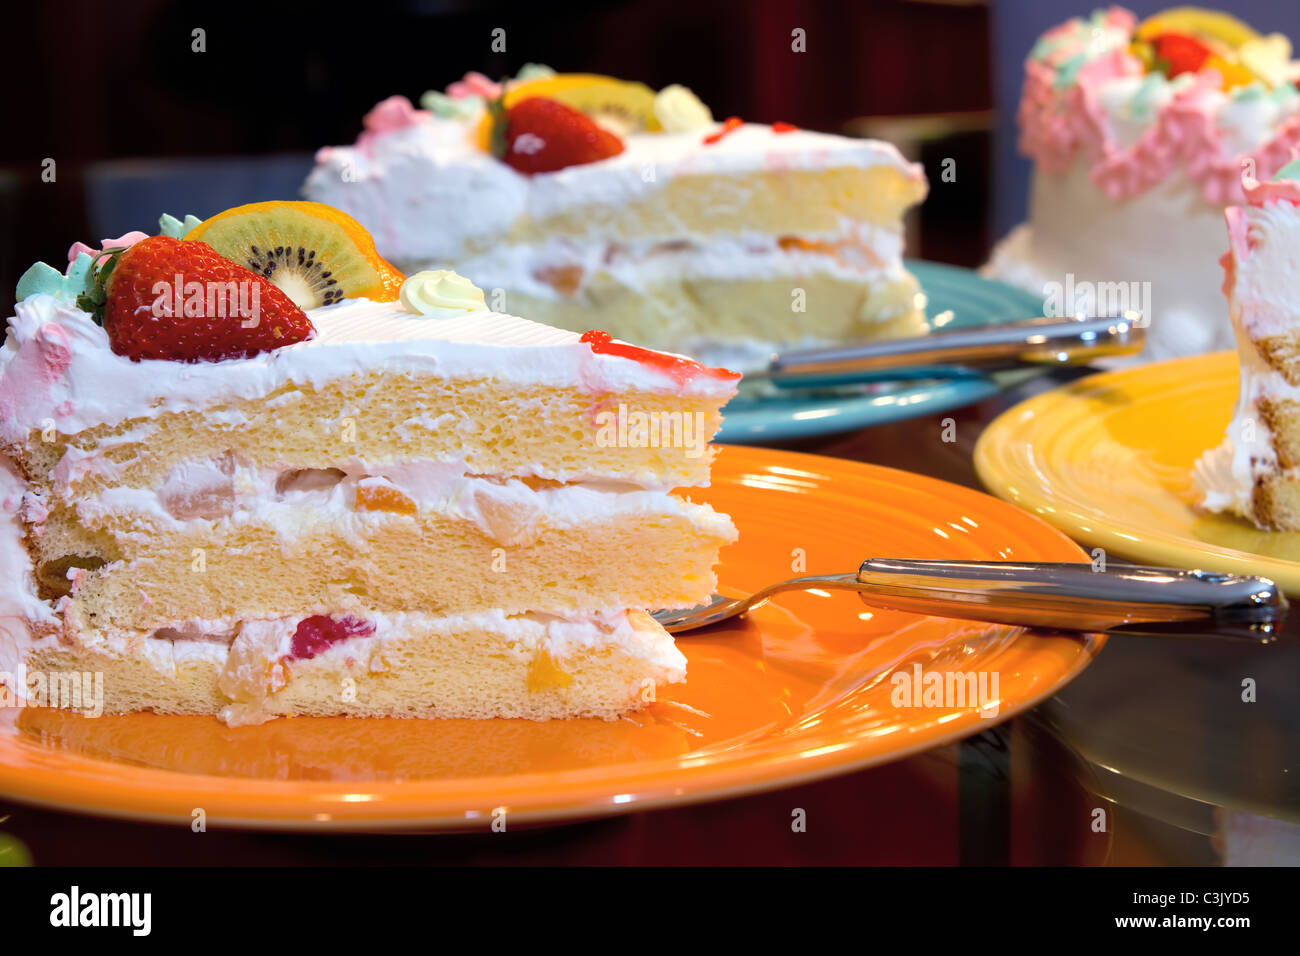 Happy Birthday Cake with Fresh and Canned Fruits Layered with